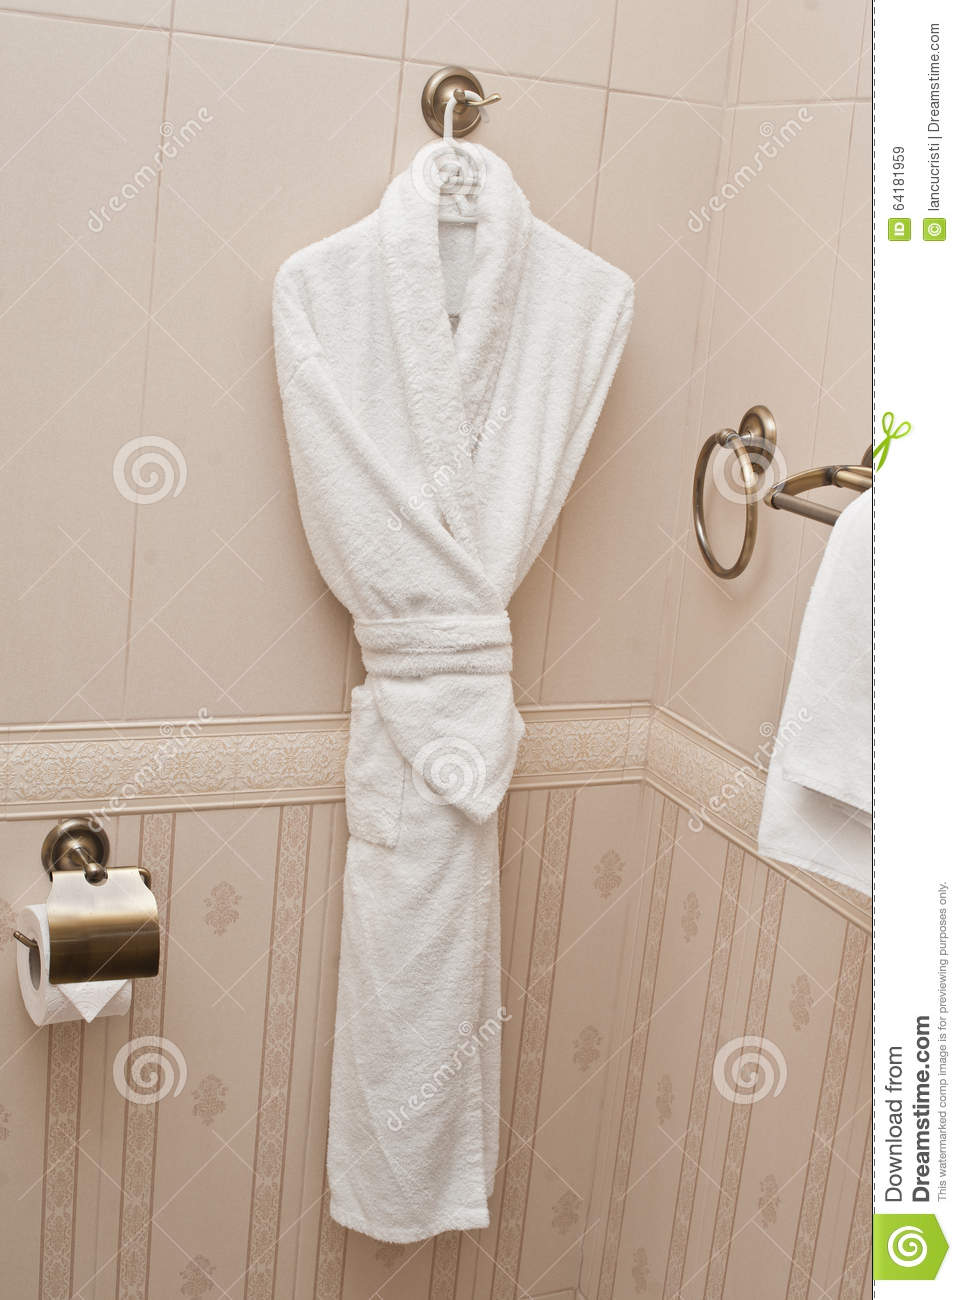 White Fresh Bath Robe Hang On Bathroom Wall. White Shower Gown And ...